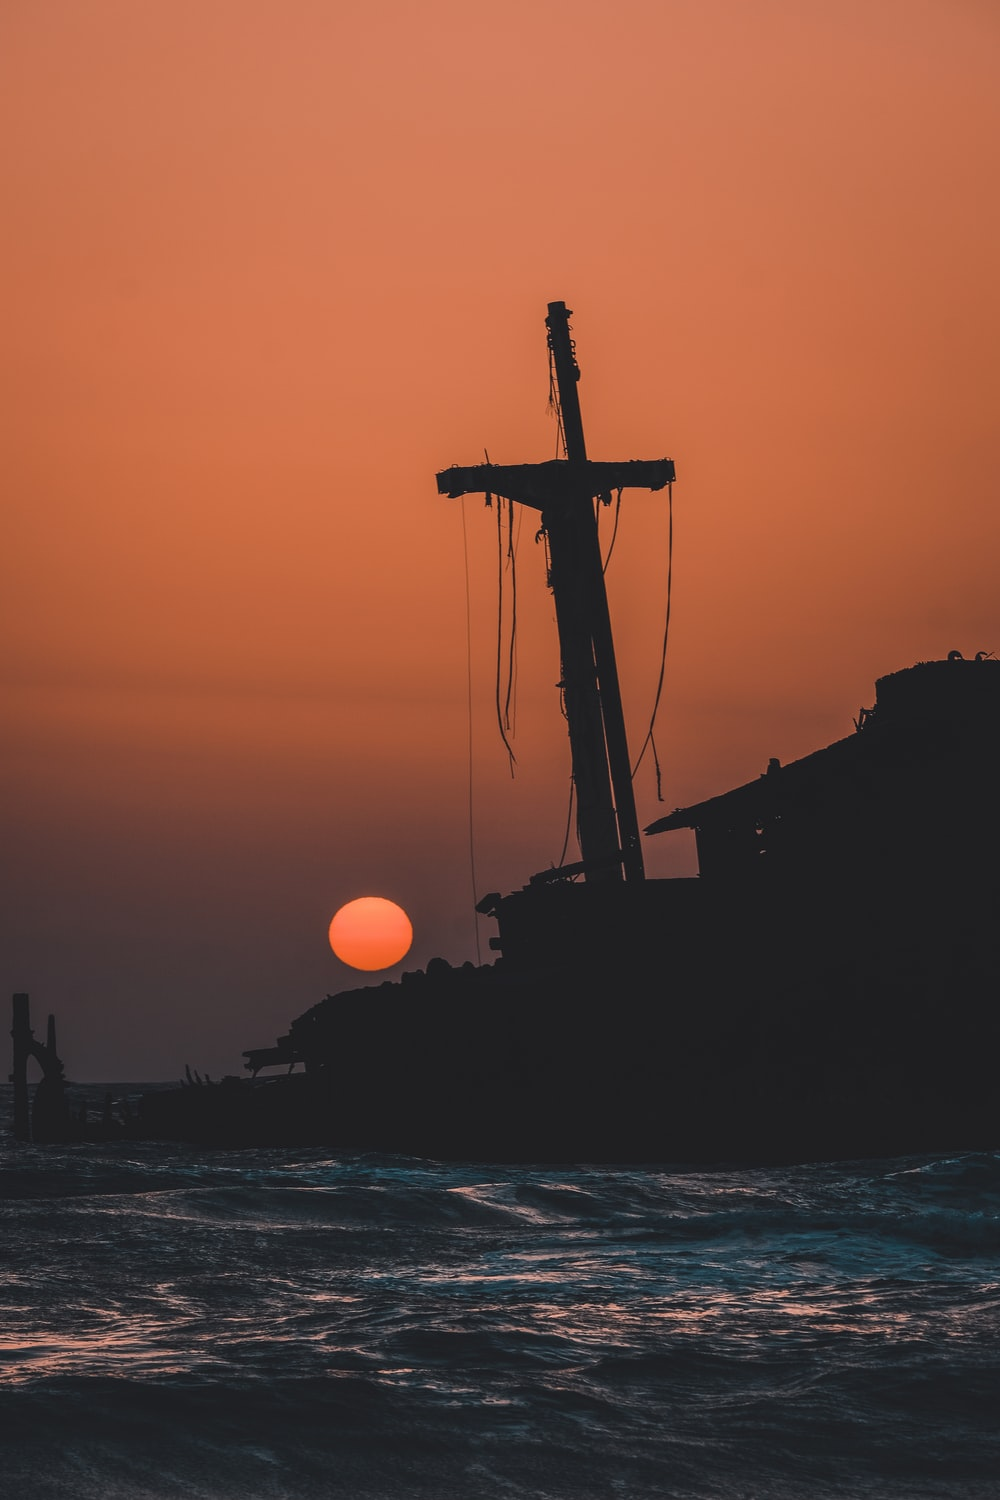 silhouette of ship on sea during sunset